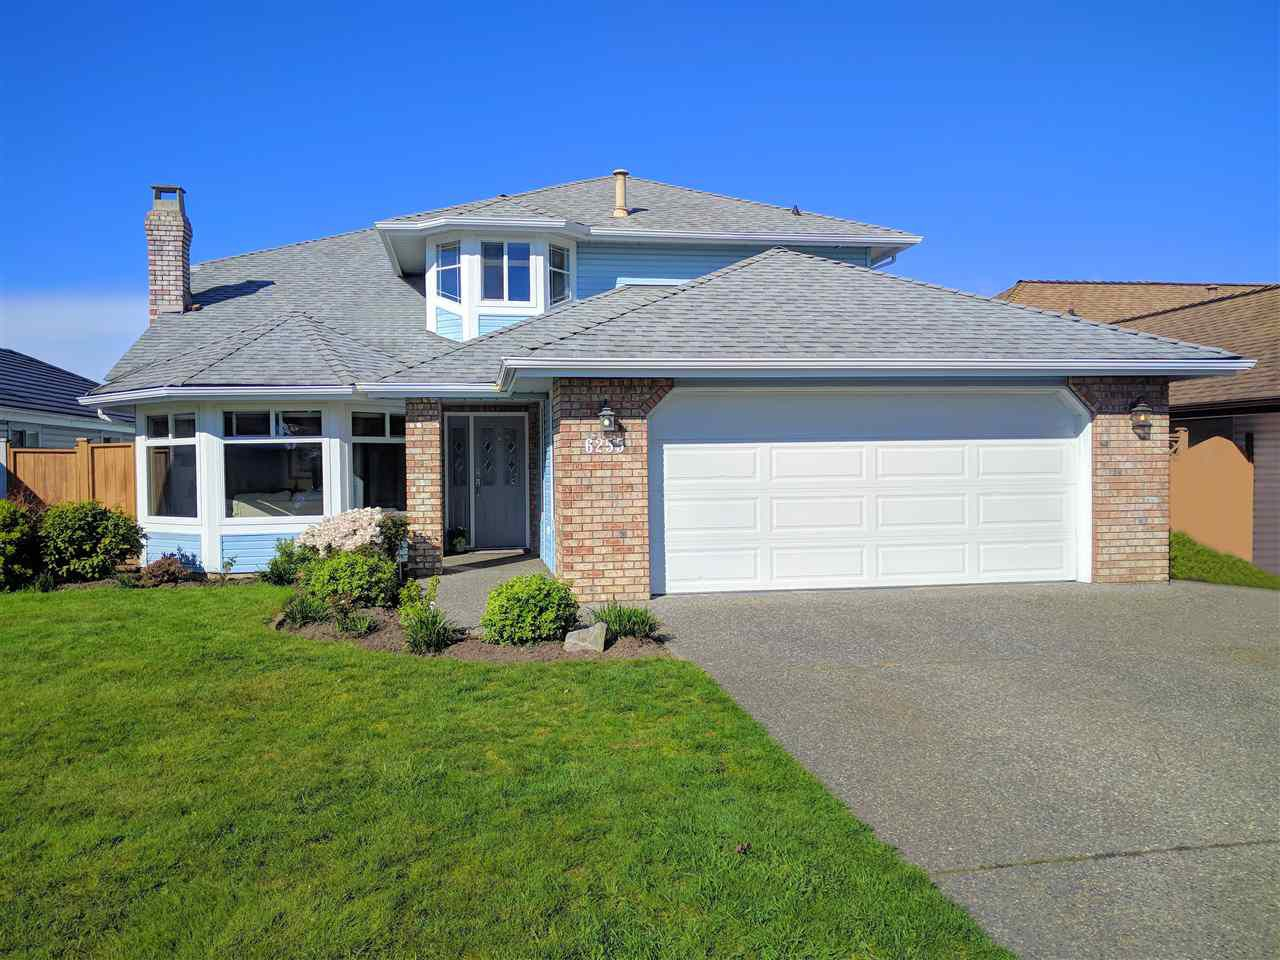 """Main Photo: 6255 HOLLY PARK Drive in Delta: Holly House for sale in """"HOLLY"""" (Ladner)  : MLS®# R2359650"""